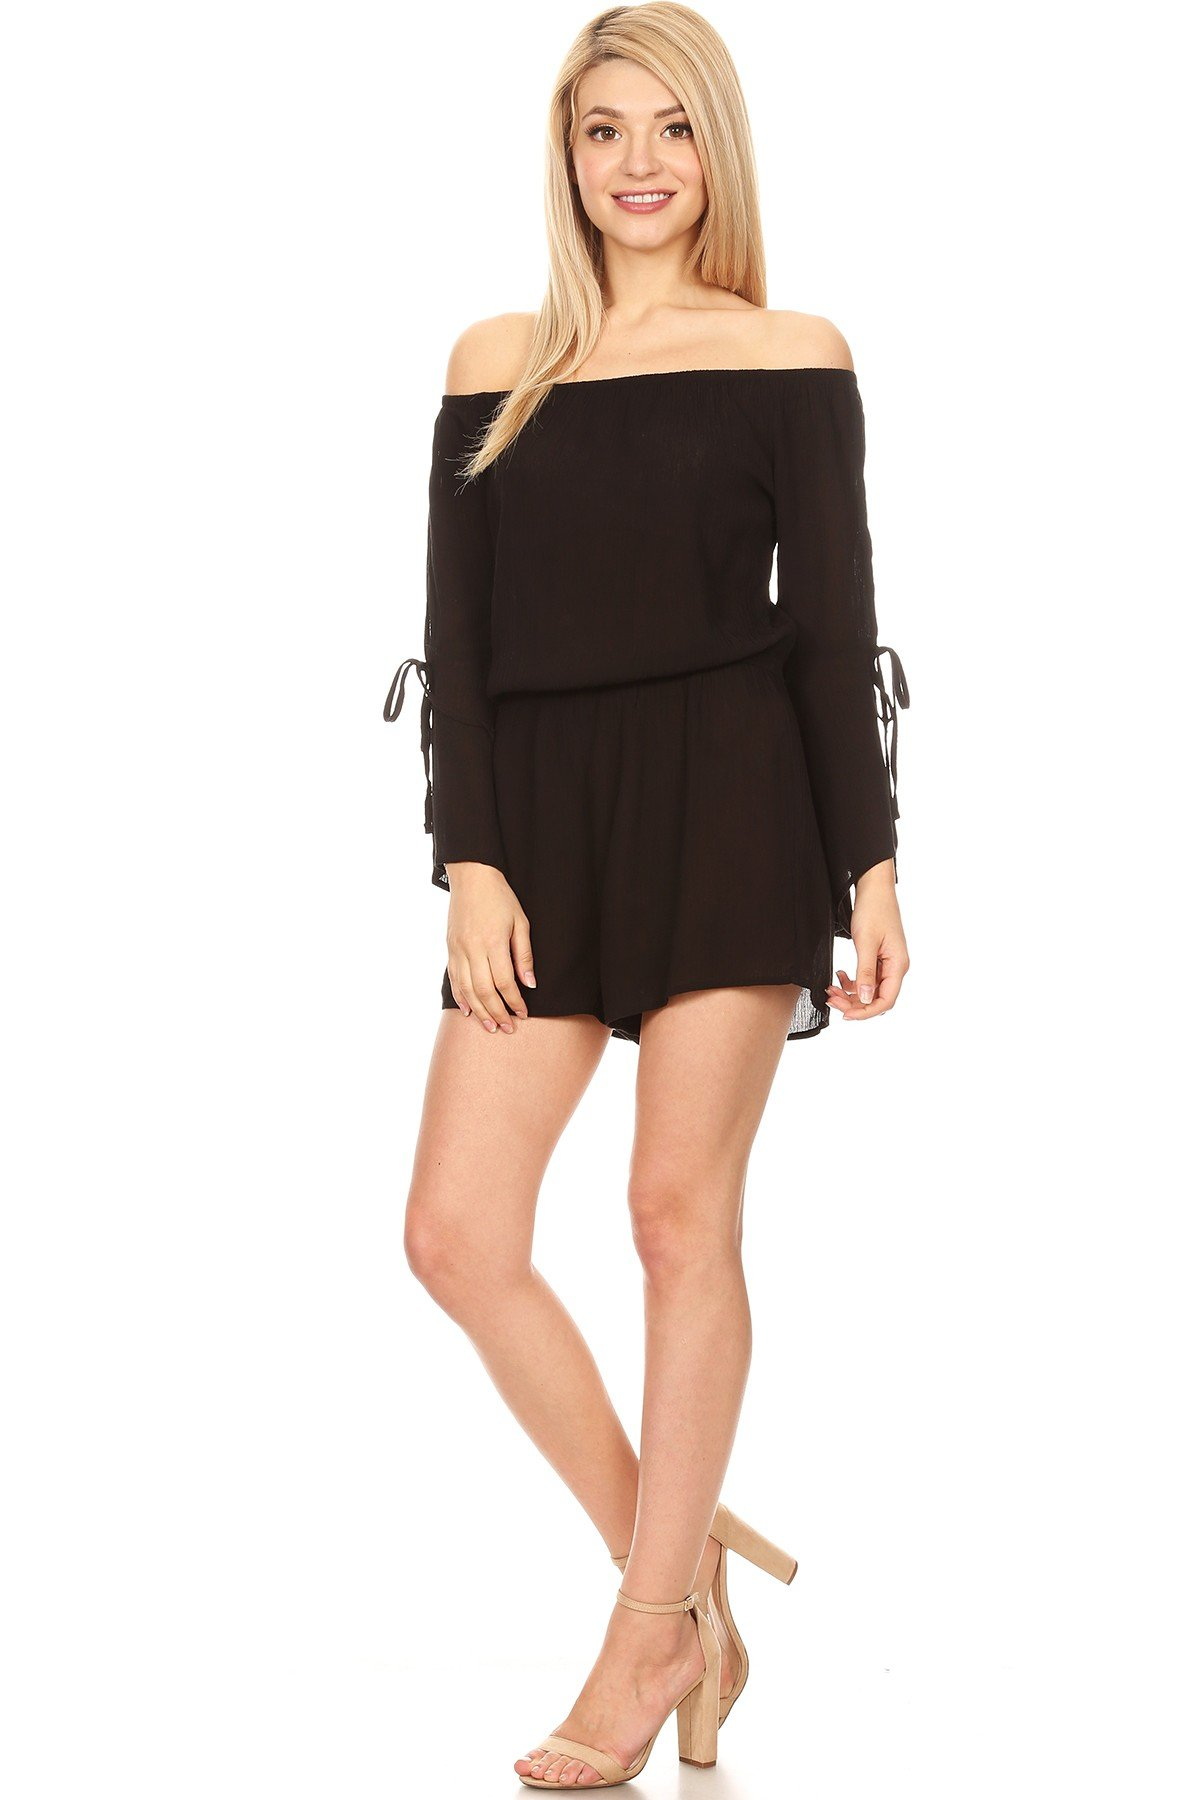 Ambiance Apparel Sexy Solid Off-Shoulder Long Sleeves Romper for Women's (Small, Black)